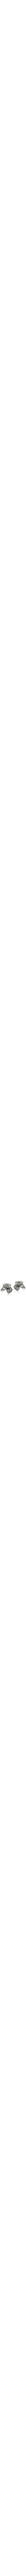 Dainty sterling silver candlesticks. Each candlestick is created out of beautiful silver, in the shape of an open nut, freshly picked with silver stems and leaves holding up the nature-inspired candlestick.